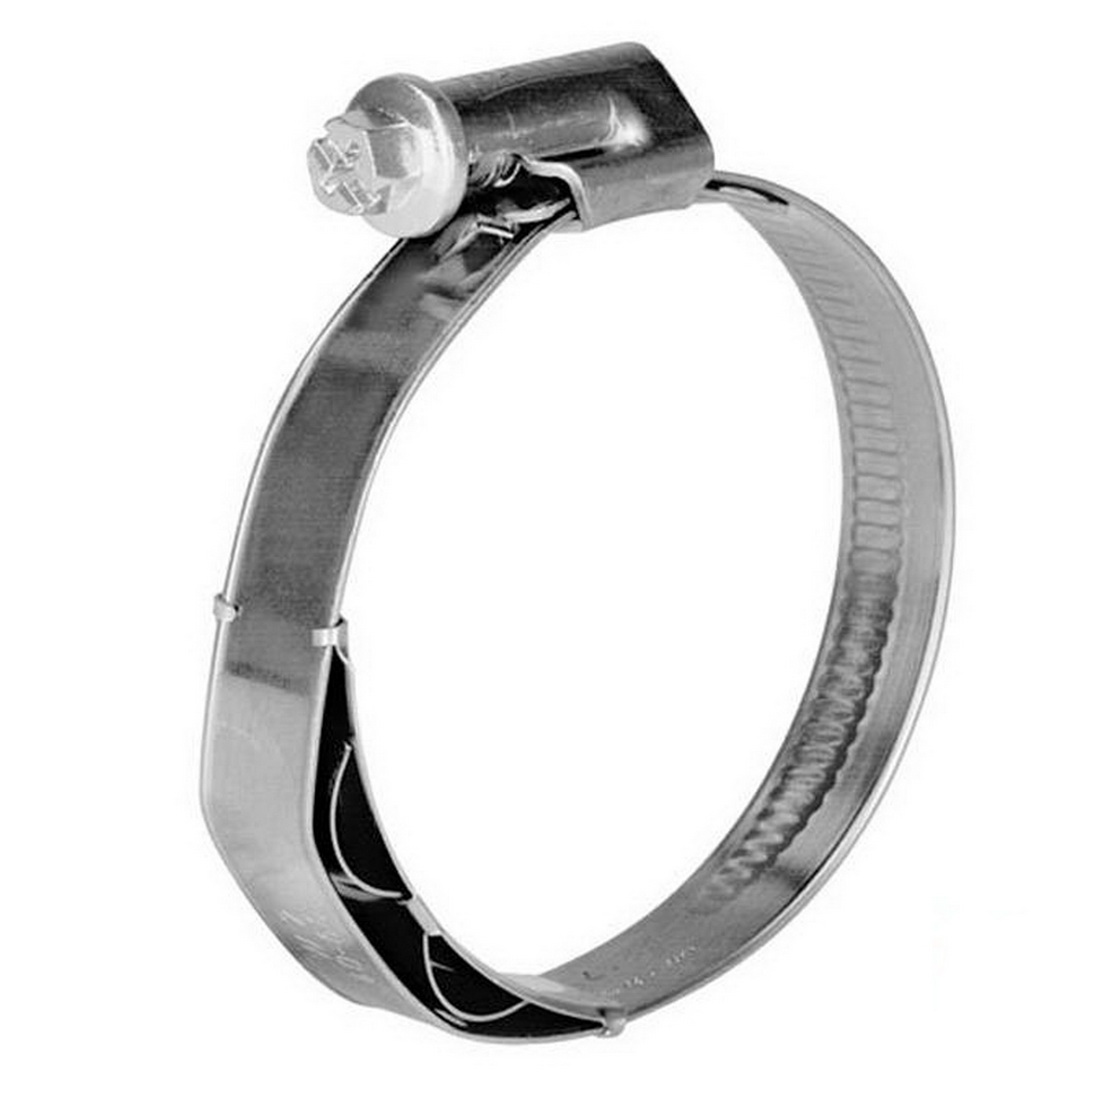 TORRO Worm Drive Hose Clamp 70-90mm 12mm Band W3 430 Stainless Steel P1 WDHC709012W3